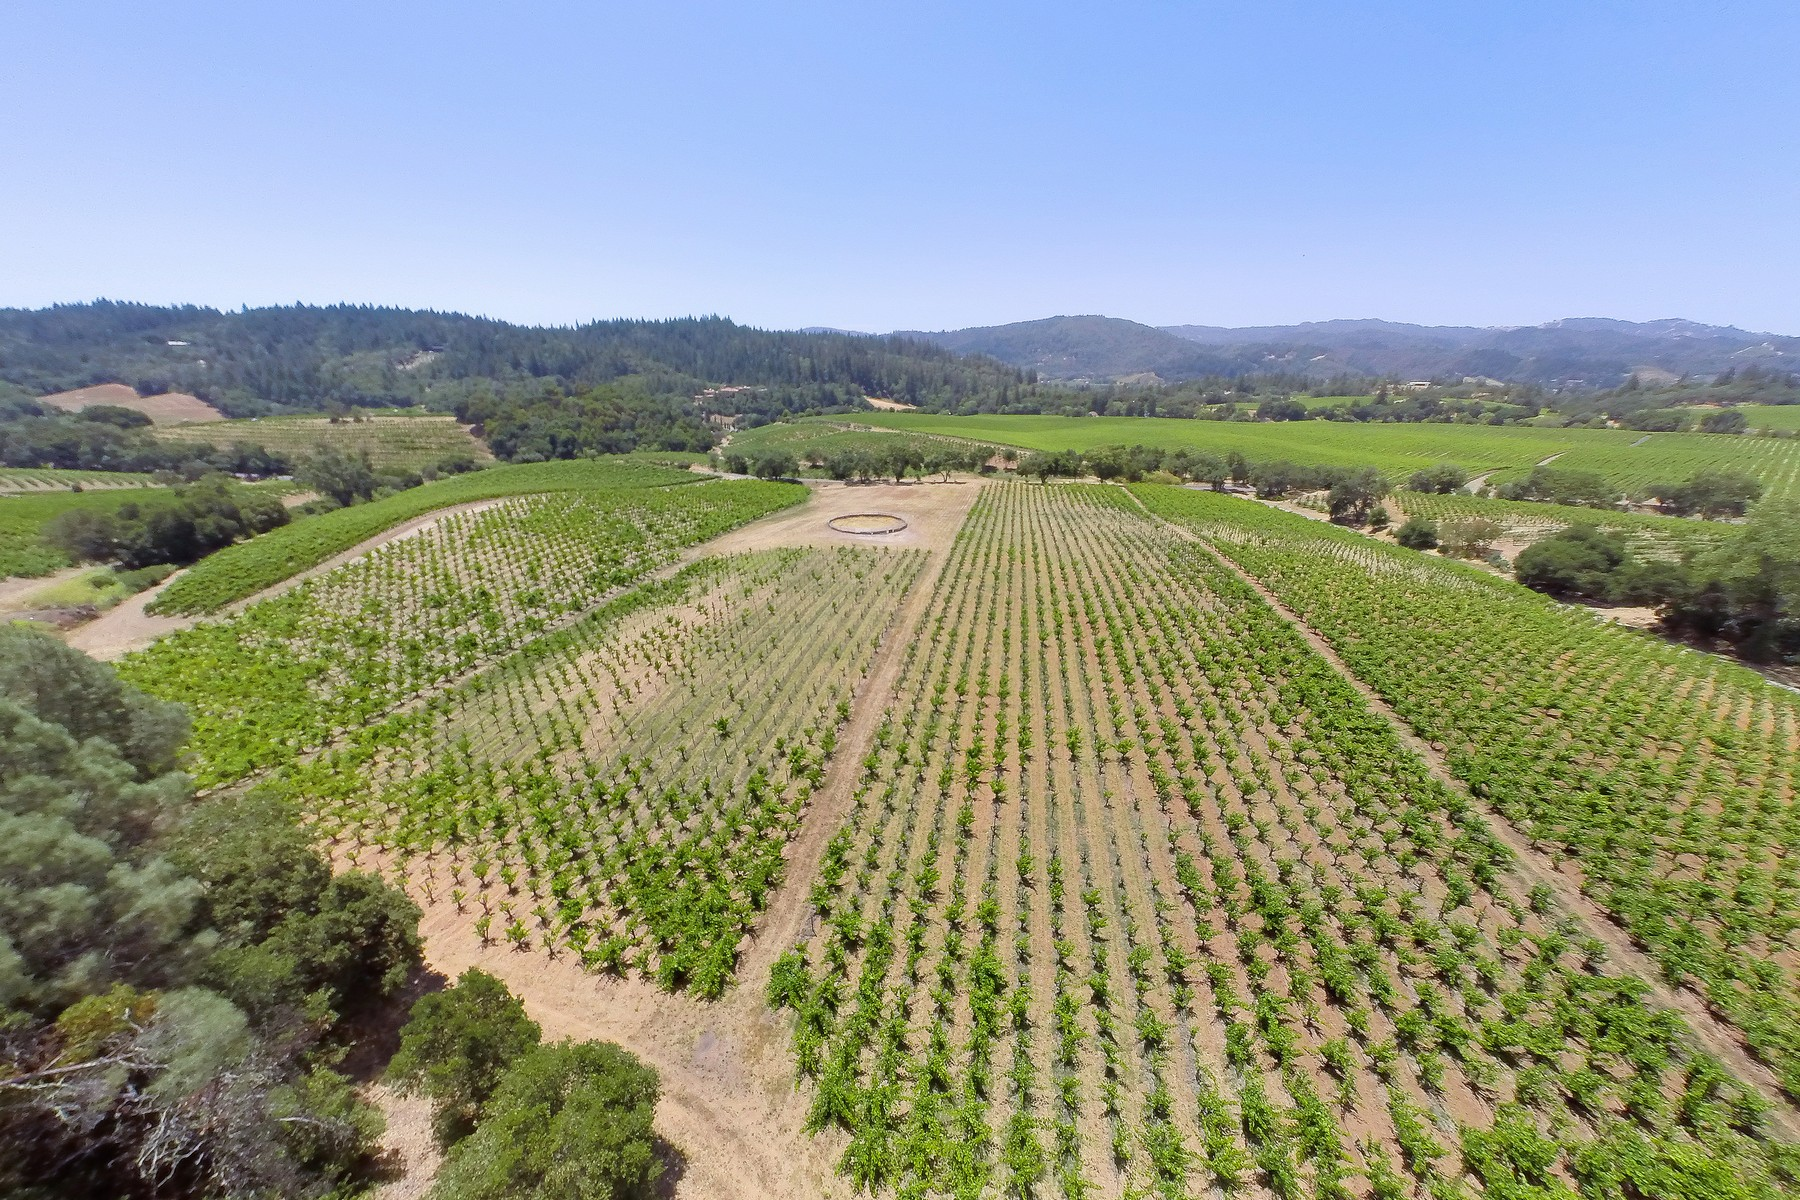 Farm / Ranch / Plantation for Sale at Carreras Ranch 22700 Walling Rd Geyserville, California 95441 United States